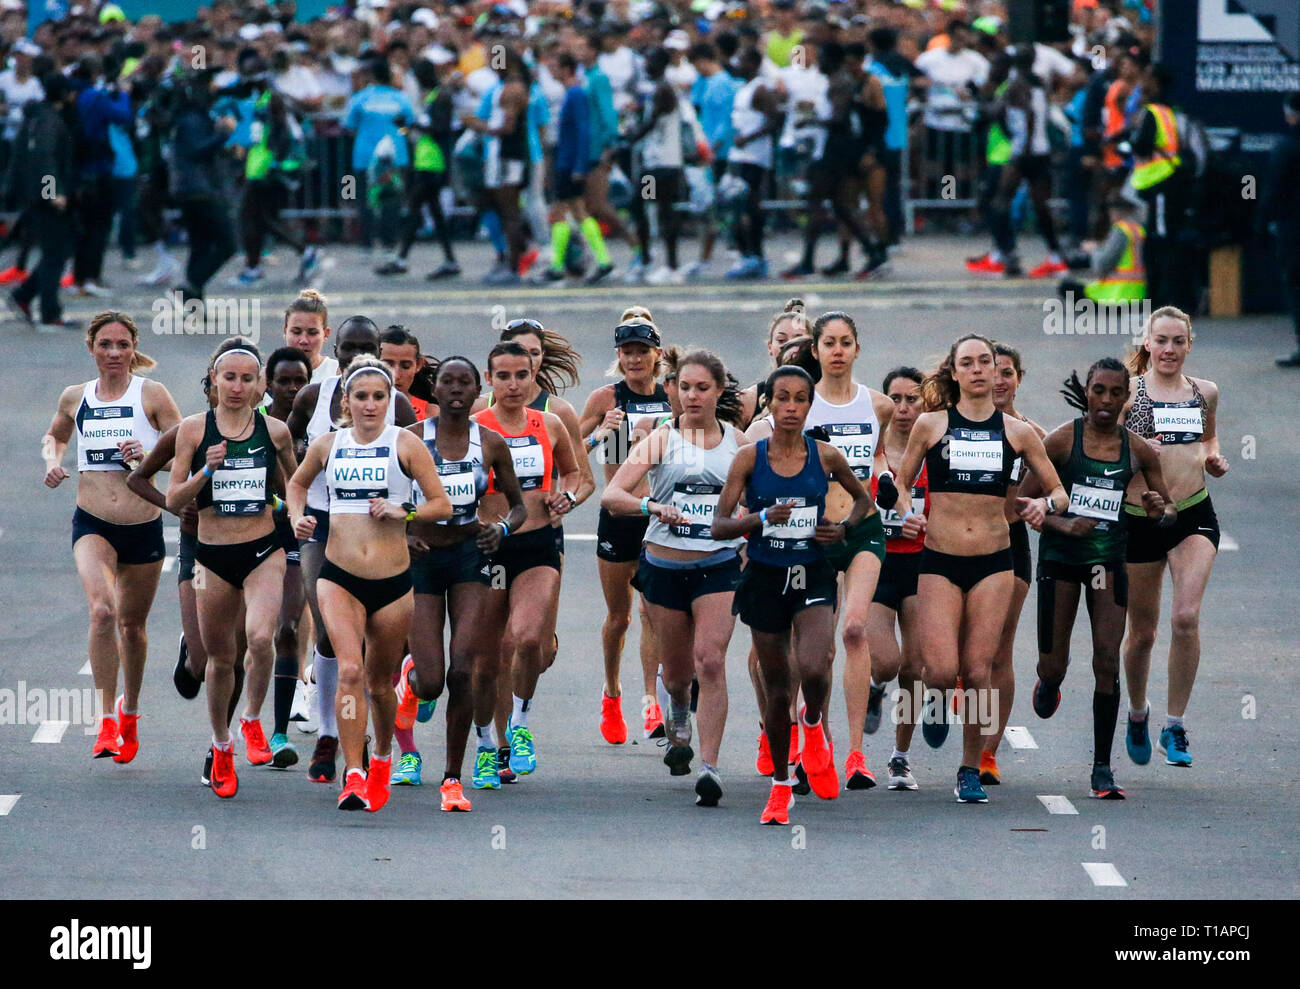 Los Angeles, USA. 24th Mar, 2019. Women elite runners start the race from Dodger Stadium during the 34th LA Marathon in Los Angeles, the United States, March 24, 2019. Credit: Zhao Hanrong/Xinhua/Alamy Live News - Stock Image